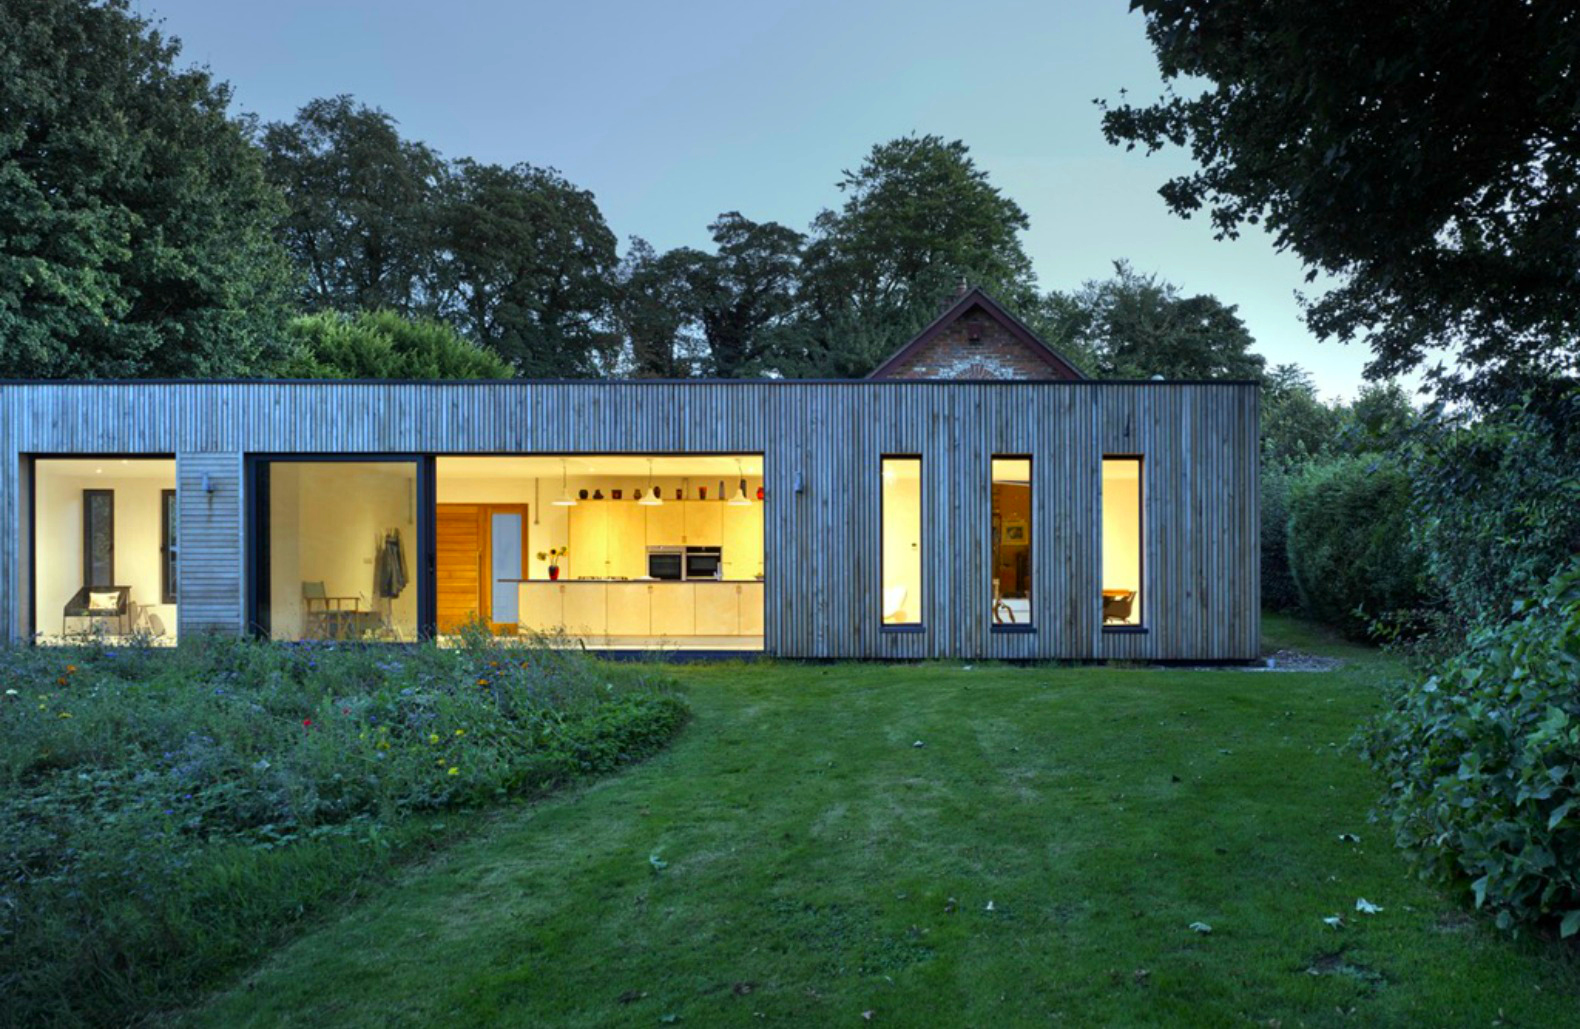 Architects transform 18th century barn with seamless